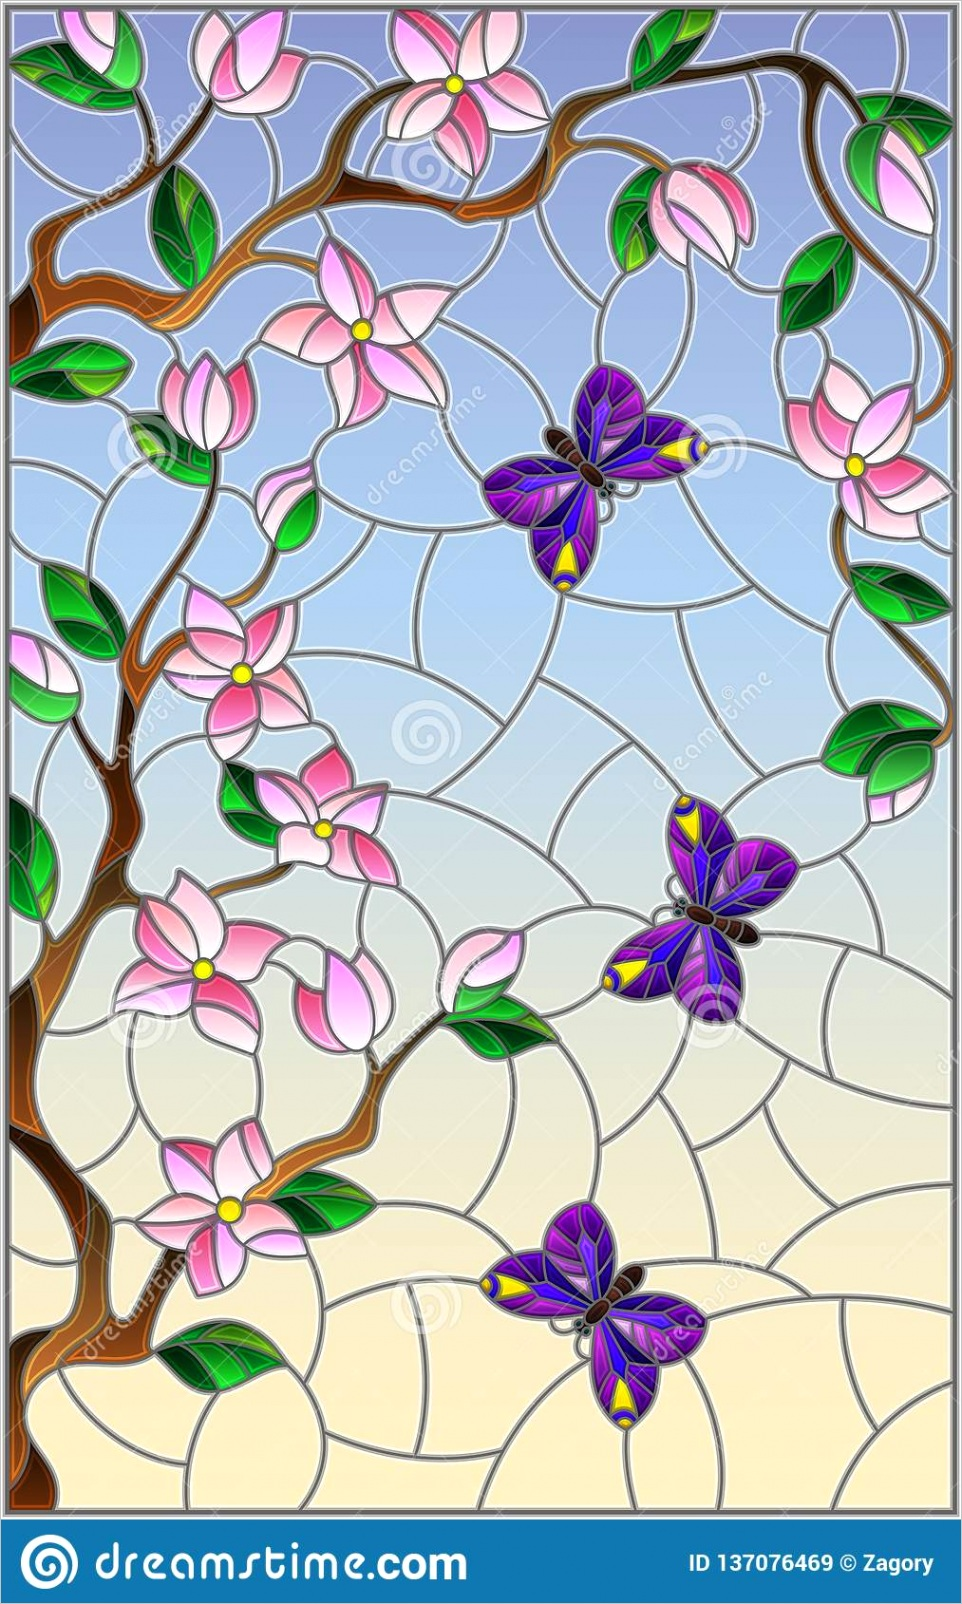 illustration stained glass style cherry blossom tree bright butterflies blue sky background image